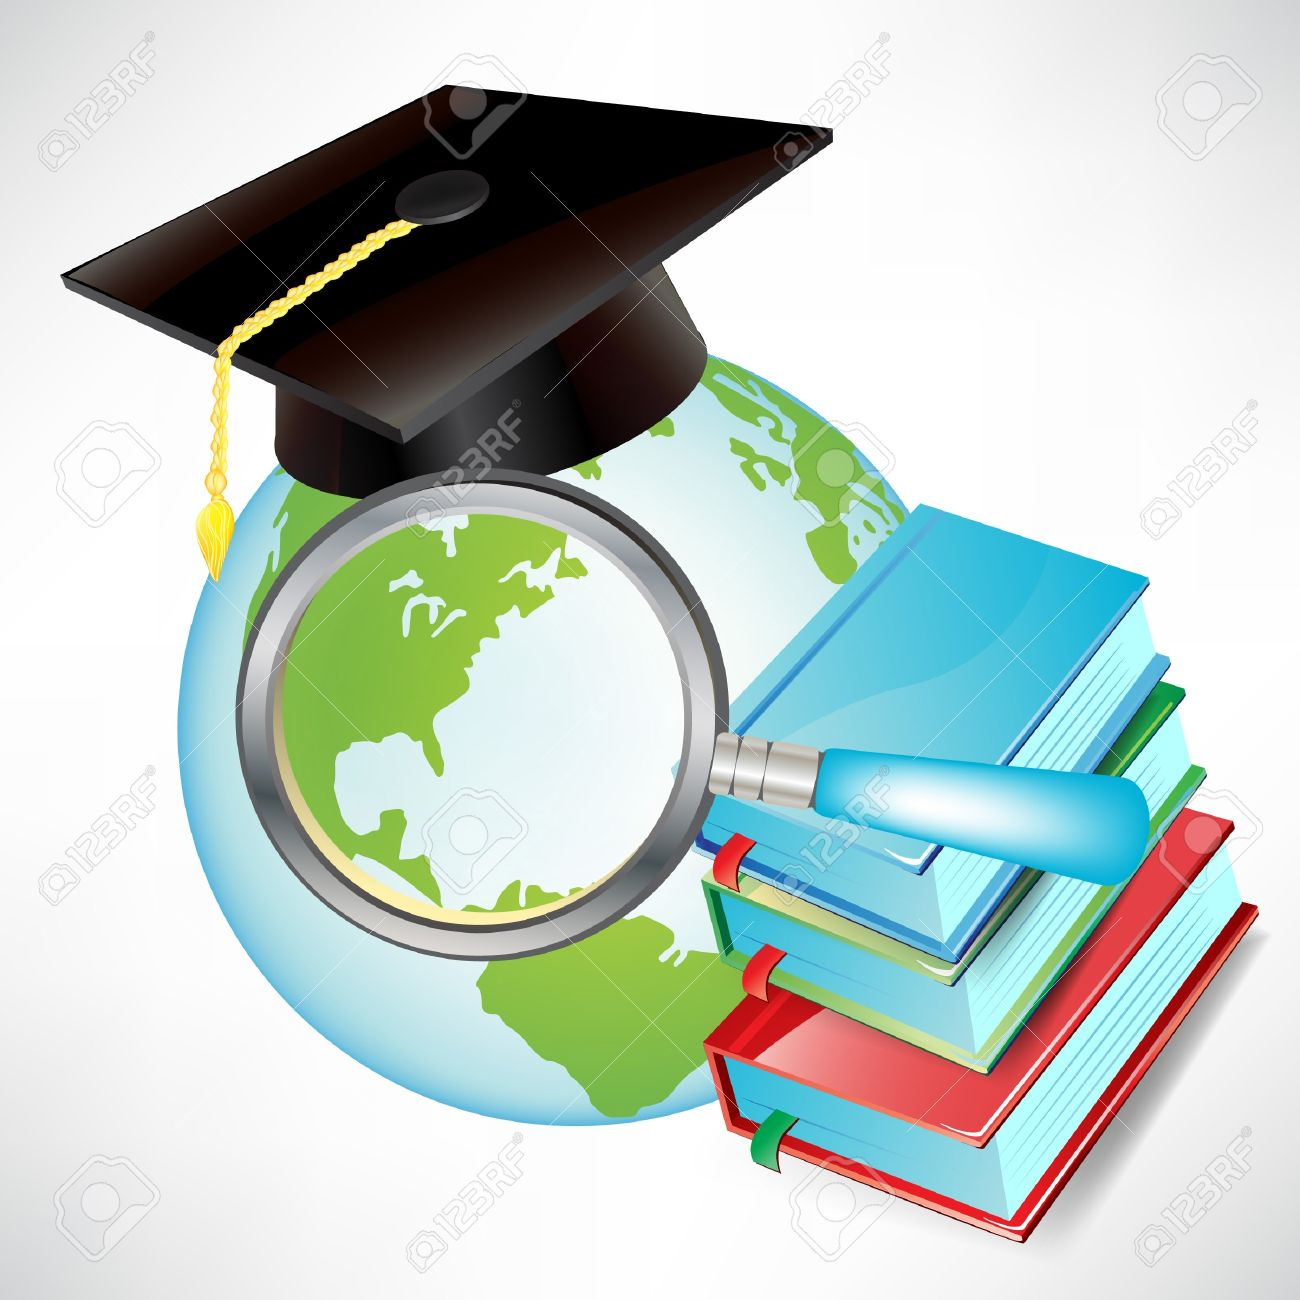 earth globe with graduation cap, books and magnifying glass isolated Stock Vector - 10888425